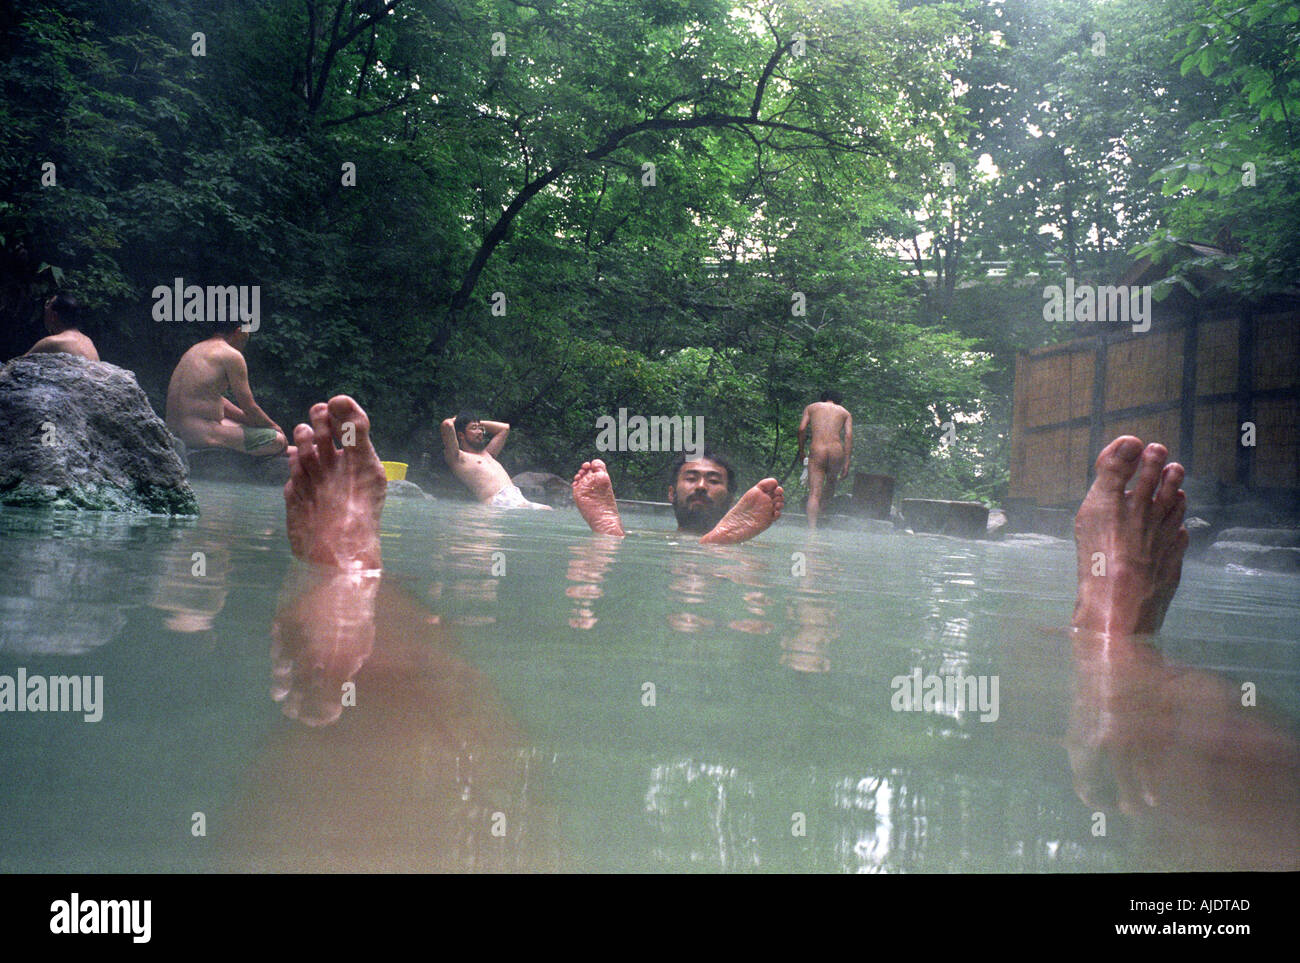 Men Relax In A Hot Spring Called An Onsen In Japan Stock -4280